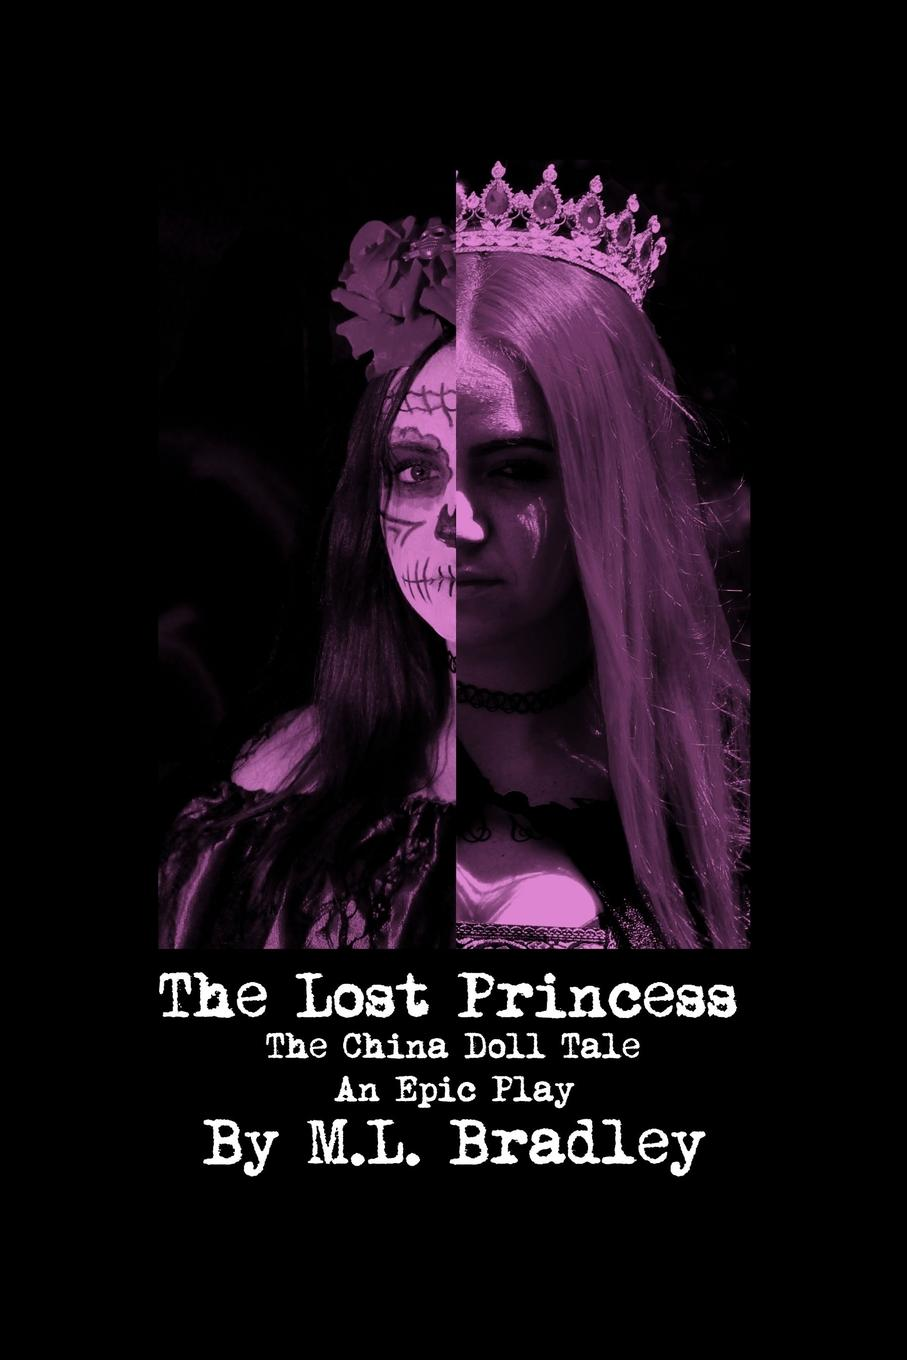 M. L. Bradley The Lost Princess. The China Doll Tale - An Epic Play cabot m princess in the middle